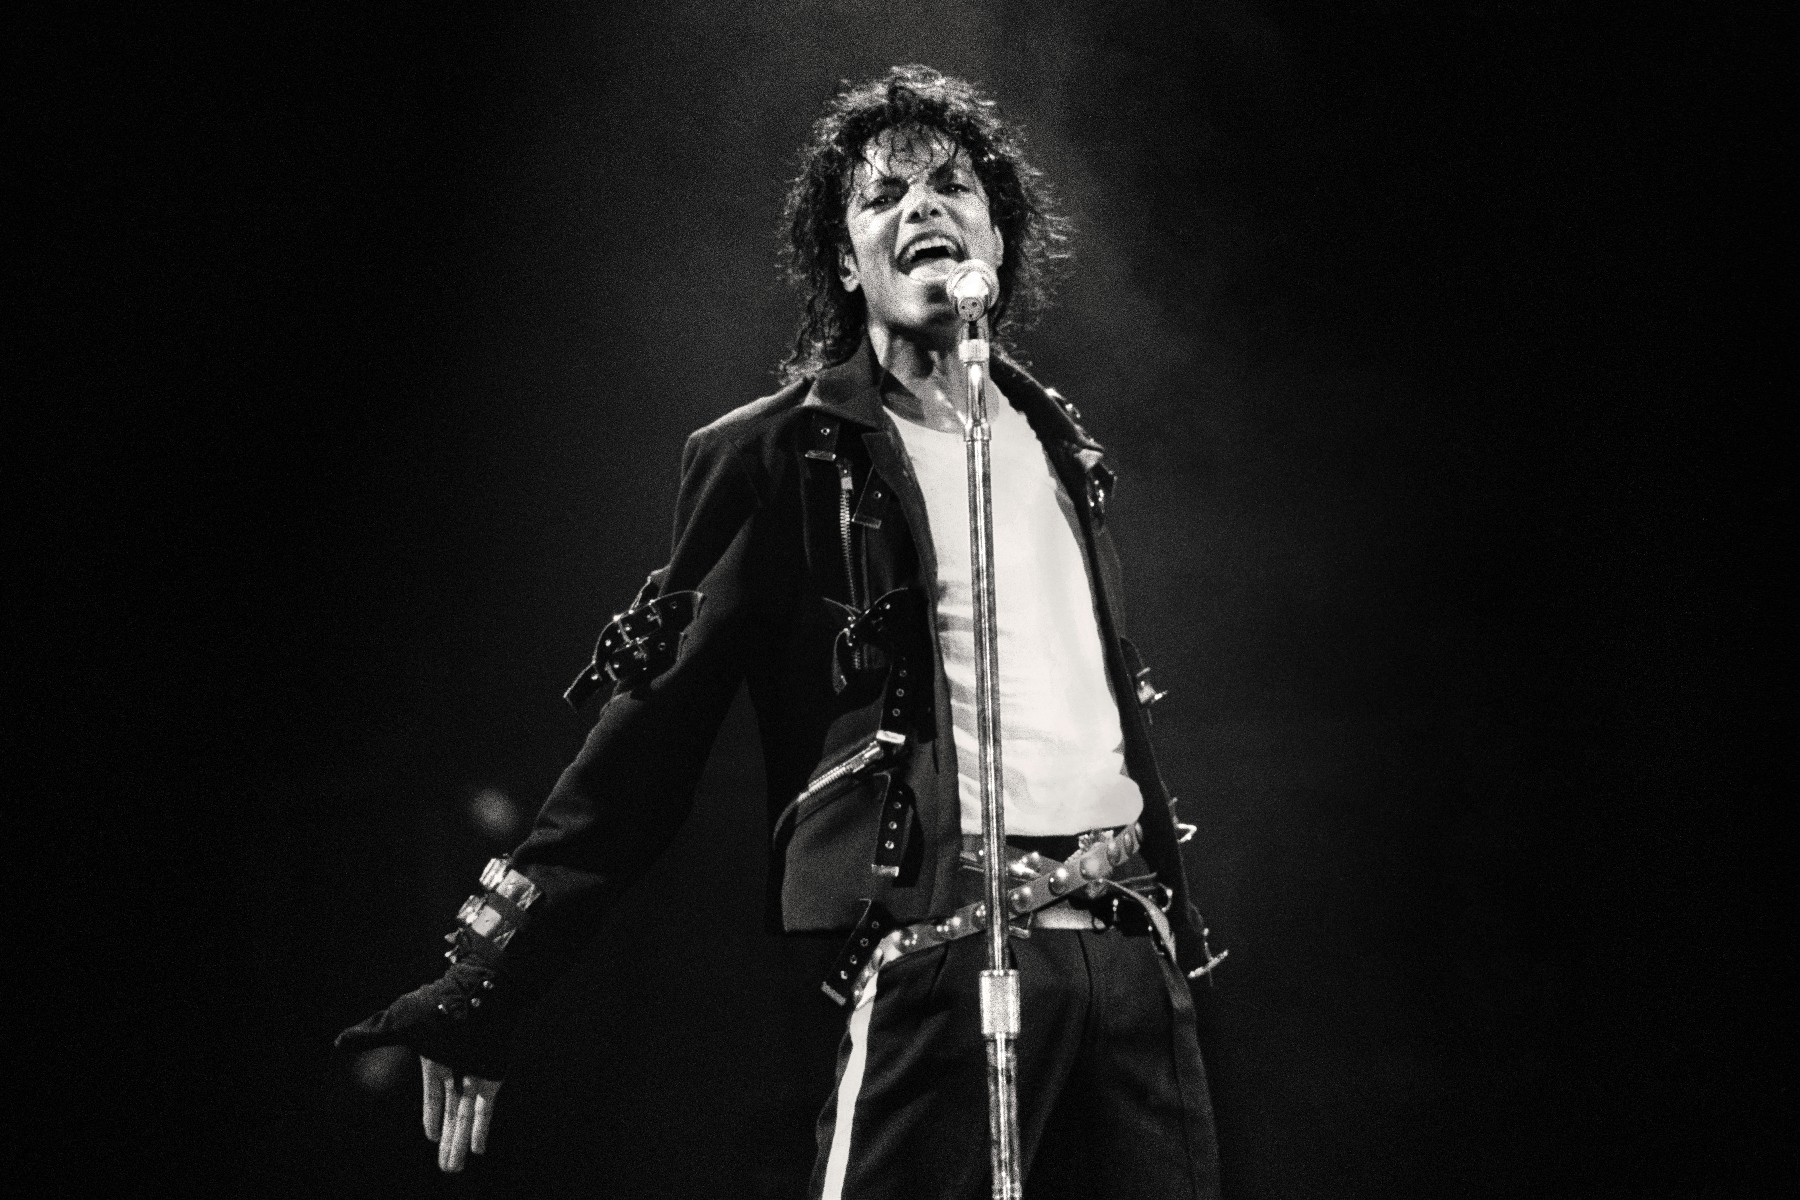 New Michael Jackson Album 'Xscape' to Come Out in May